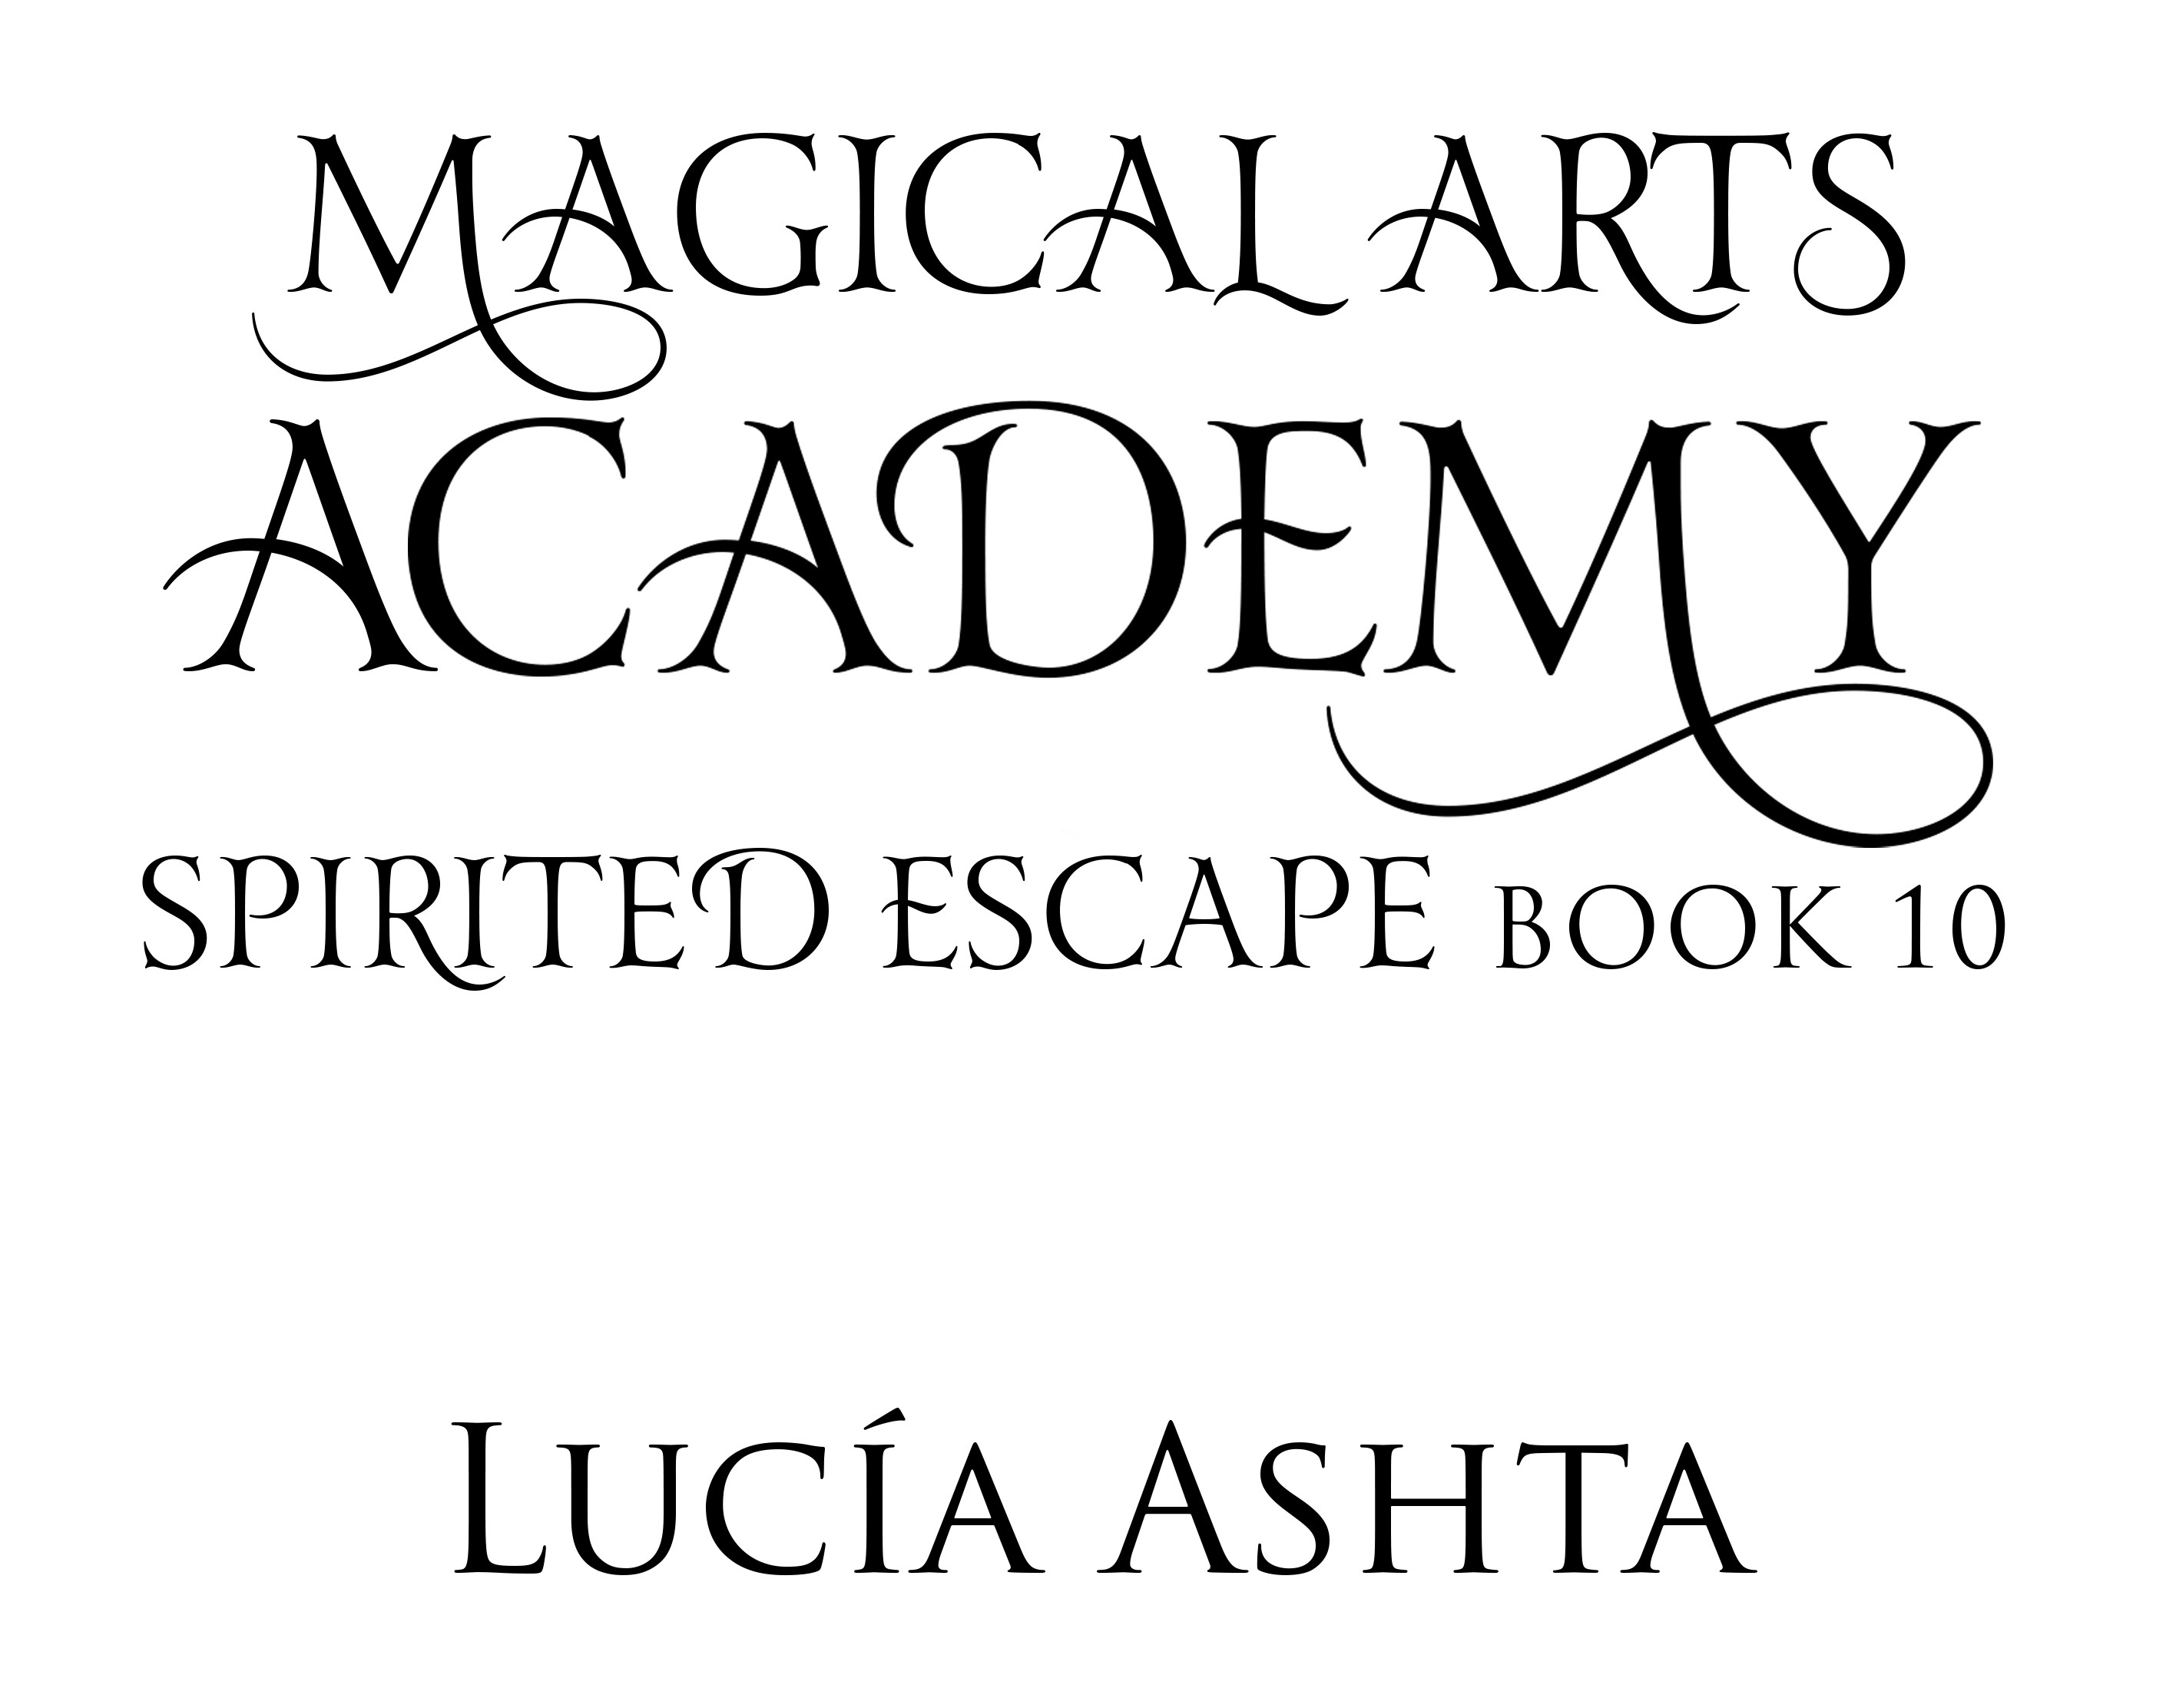 Magical Arts Academy book 10 cover